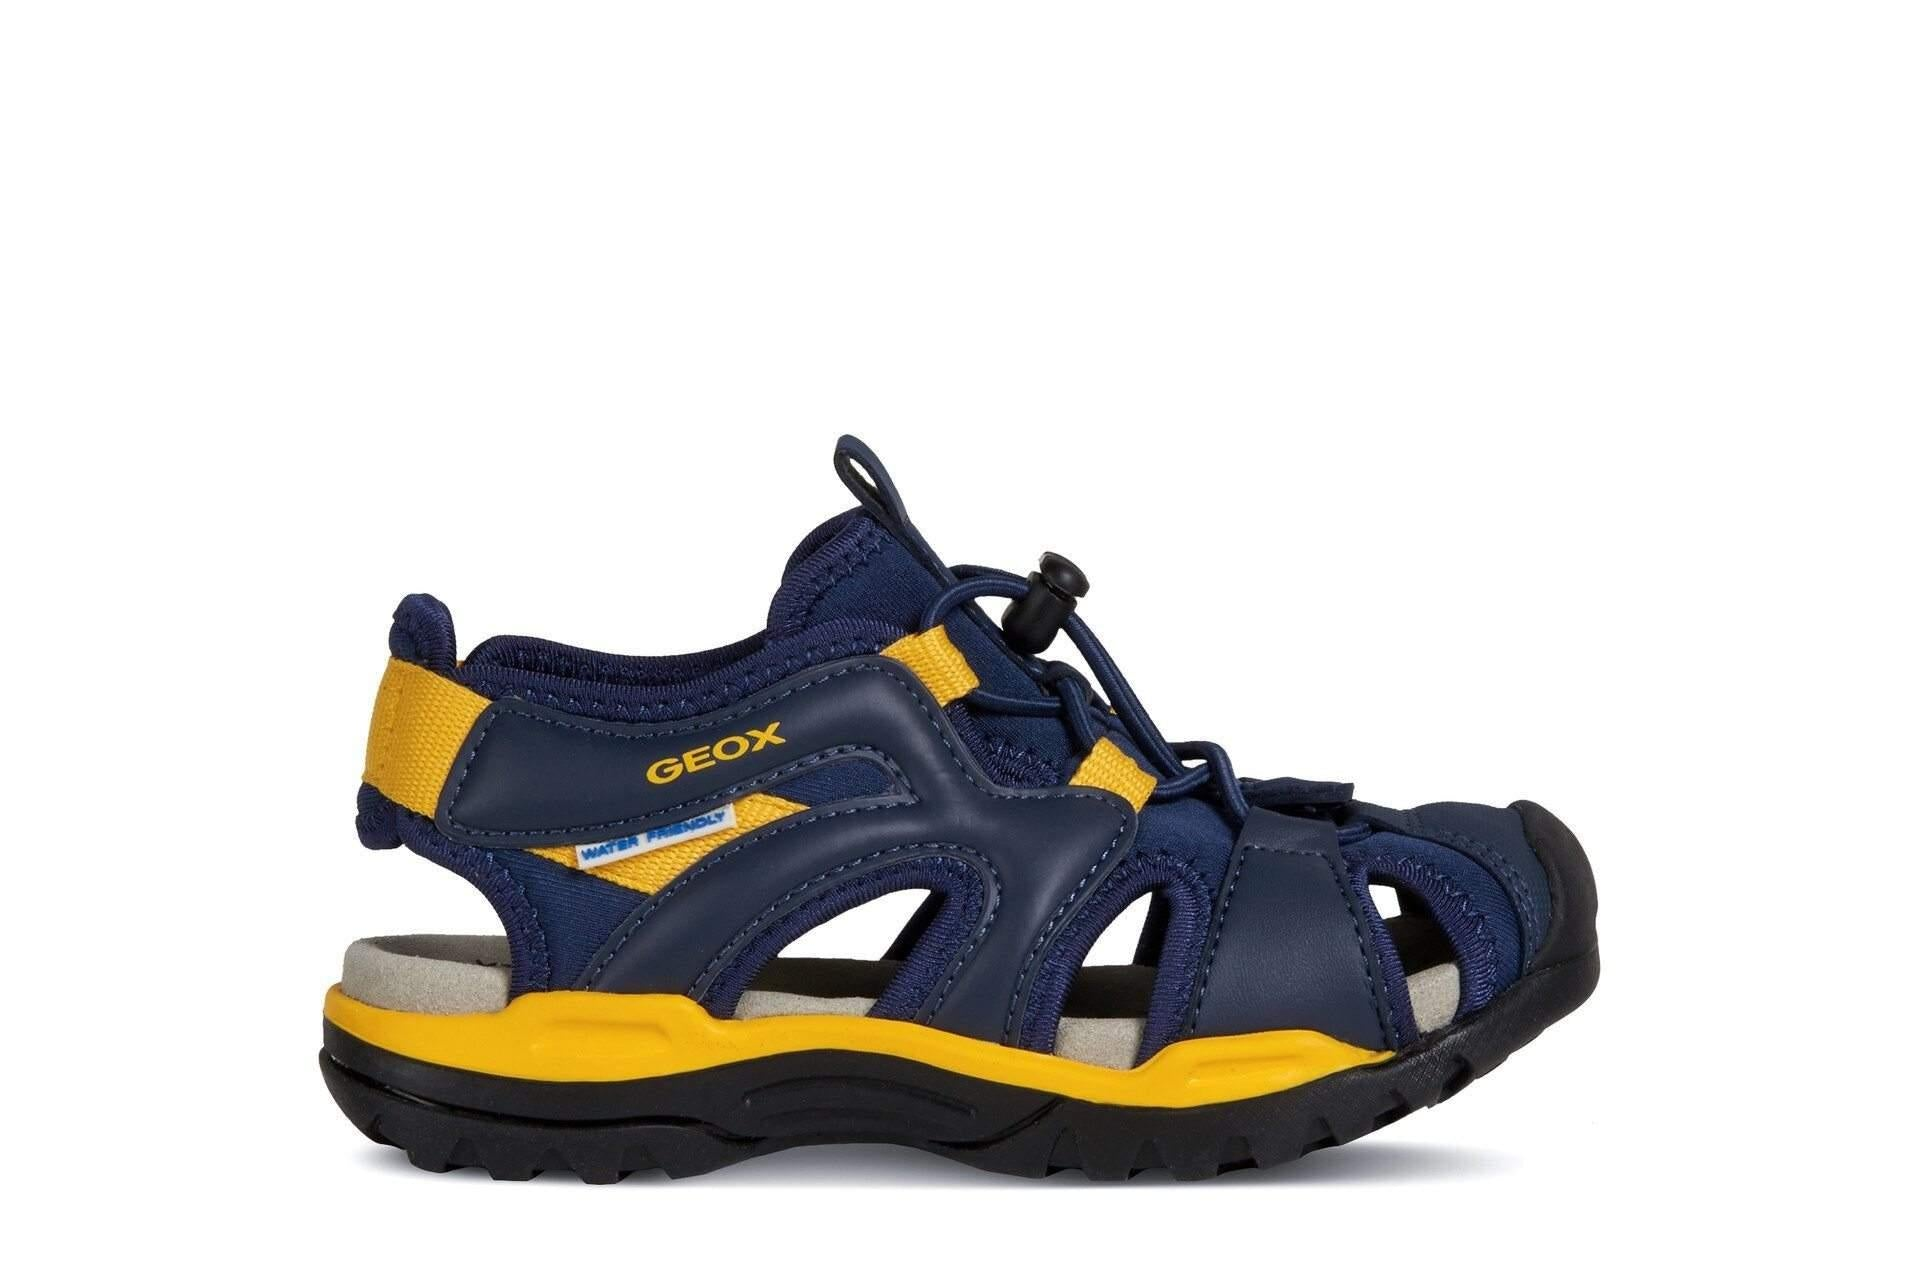 Geox BOREALIS Water Friendly Sandals / Little Kids / Youth - ShoeKid Canada